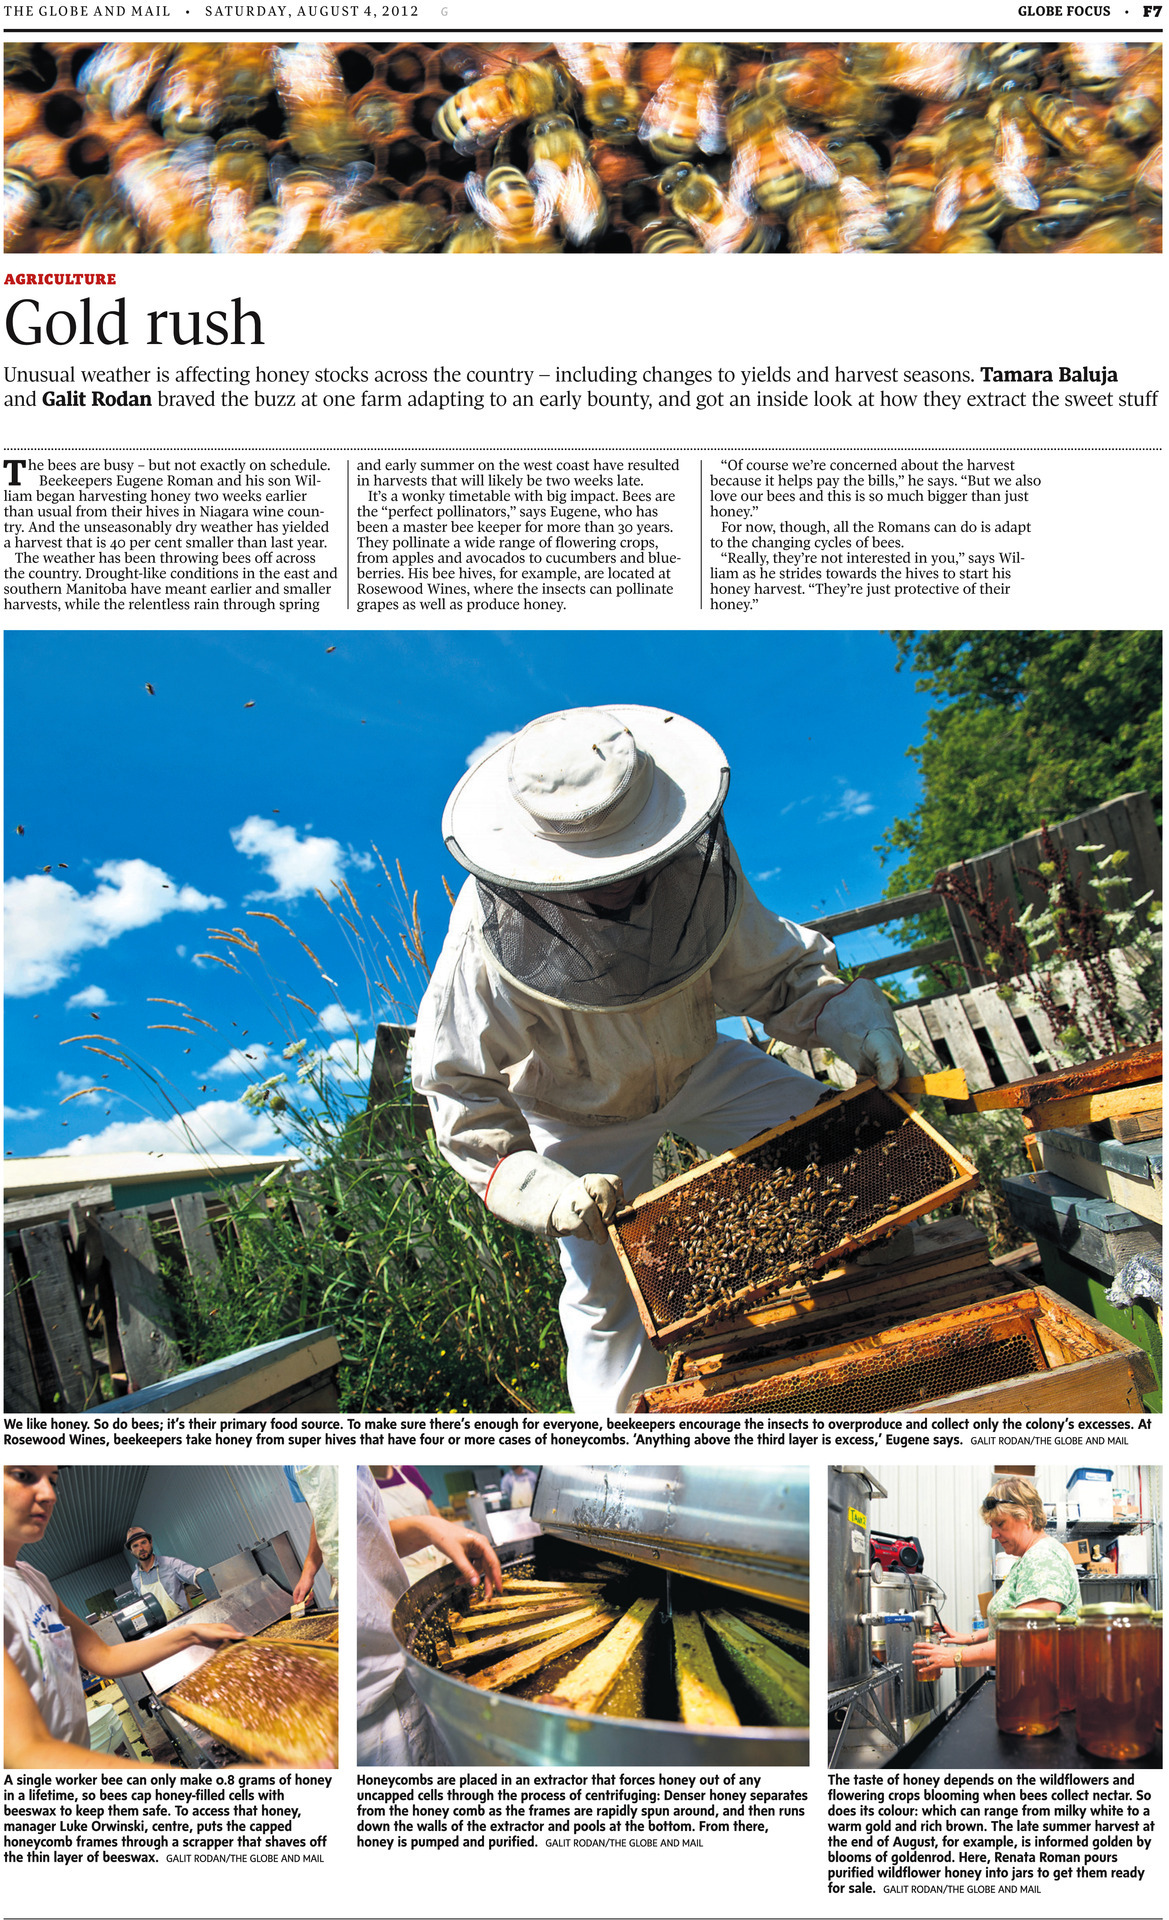 "1. Master beekeeper Eugene Roman prepares to pull a frame from a hive as beekeeper and son William Roman follows closely behind with  a smoker, used to clear the hive at Rosewood Estates' 21st Vineyard and Honey Processing Location in Jordan, Ontario, July 25, 2012.  (Galit Rodan/The Globe and Mail) 2. Bees crawl around a sheet of honeycomb with capped brood at Rosewood Estates' 21st Vineyard and Honey Processing Location in Jordan, Ontario, July 25, 2012.  (Galit Rodan/The Globe and Mail) 3. Bees crawl around a sheet of honeycomb at Rosewood Estates' 21st Vineyard and Honey Processing Location in Jordan, Ontario, July 25, 2012.  (Galit Rodan/The Globe and Mail) 4. Master beekeeper Eugene Roman examines a frame from a hive at Rosewood Estates' 21st Vineyard and Honey Processing Location in Jordan, Ontario, July 25, 2012.  (Galit Rodan/The Globe and Mail) 5. Master beekeeper Eugene Roman examines a frame from a hive at Rosewood Estates' 21st Vineyard and Honey Processing Location in Jordan, Ontario, July 25, 2012.  (Galit Rodan/The Globe and Mail) 6. Niagara College summer coop students Audrey Friendship (left) and Benjamin Brown (right) as well as Vineyard Manager Luke Orwinski (centre) put capped frames through an uncapper before placing them in honey extractors, July 25, 2012 at Rosewood Estates' 21st Vineyard and Honey Processing Location in Jordan, Ontario.  (Galit Rodan/The Globe and Mail) 7. Niagara College summer coop student Audrey Friendship opens a honey extractor, revealing the frames inside, July 25, 2012 at Rosewood Estates' 21st Vineyard and Honey Processing Location in Jordan, Ontario.  (Galit Rodan/The Globe and Mail) 8. Harvested wildflower honey and various wines for sale in honeycomb-shaped shelves at Rosewood Estates Winery in Beamsville, July 25, 2012.  (Galit Rodan/The Globe and Mail) 9. ""Queen bee"" Renata Roman pours honey in a back room at Rosewood Estates Winery in Beamsville, July 25, 2012.  (Galit Rodan/The Globe and Mail) When Randy Velocci, one of my editors, sent me an email assigning me to shoot a photo essay on a honey harvest, I kept my mouth shut about my fear of bees. For one thing, spending the greater portion of a day in the picturesque little town of Jordan, Ontario, away from the suffocating humidity of the city, sounded like a good thing. For another, the chance to actually have multiple photos published was exciting. For another, I'm an intern. Saying no is not an option (and I wouldn't have even if it were). I know my fear of bees is totally irrational. I've been stung and bitten by all sorts of other things - mosquitos, black flies, spiders, stinging nettles, dogs, squirrels… But I'd never been stung by a bee. I don't know why that particular insect provoked such fear in my heart but I was one of those people who flailed around in a panic and ran away whenever they got too close. Part of me has always feared I might be allergic. I mean, who knows, right? It's been at least a decade since my last allergy test. So death by bee always seemed like a terrifying, if probably unlikely (though possible), scenario. Aaaaaanyway, I sucked it up and went along with reporter Tamara Baluja. I had a feeling this was going to be my chance to overcome. When I'm shooting I often get so focused on getting my shots that every other emotion goes away. Sometimes I get a bit of tunnel vision. I would probably be a terrible (and short-lived) war photographer.  So, with the exception of a few seconds outside near the hives when I thought a bee had flown up into my mask and a few seconds inside when I discovered a drowsy bee clinging to the top of my camera about a centimeter away from my eyeball, I was fine. No panic. Just fun and concentration and sweat. Shooting through a helmet/netting is kinda tough. You can't get the viewfinder right up to your eye so the edges of the frame get kind of lost in a vignette and sometimes you aren't sure if you're hitting your focus. But it all worked out. And neither of us got stung! I felt more confident around bees after that. I started thinking I'd probably just never be stung. Classic, though. A couple weeks later, on a day I was shooting a 16-kilometre obstacle course, I got stung for the first time as I was moving from a standing to a crouching position. Right in the back of the knee. It really wasn't that bad. link: http://www.theglobeandmail.com/news/national/gold-rush-harvesting-honey-on-a-wild-weather-schedule/article4457546/"